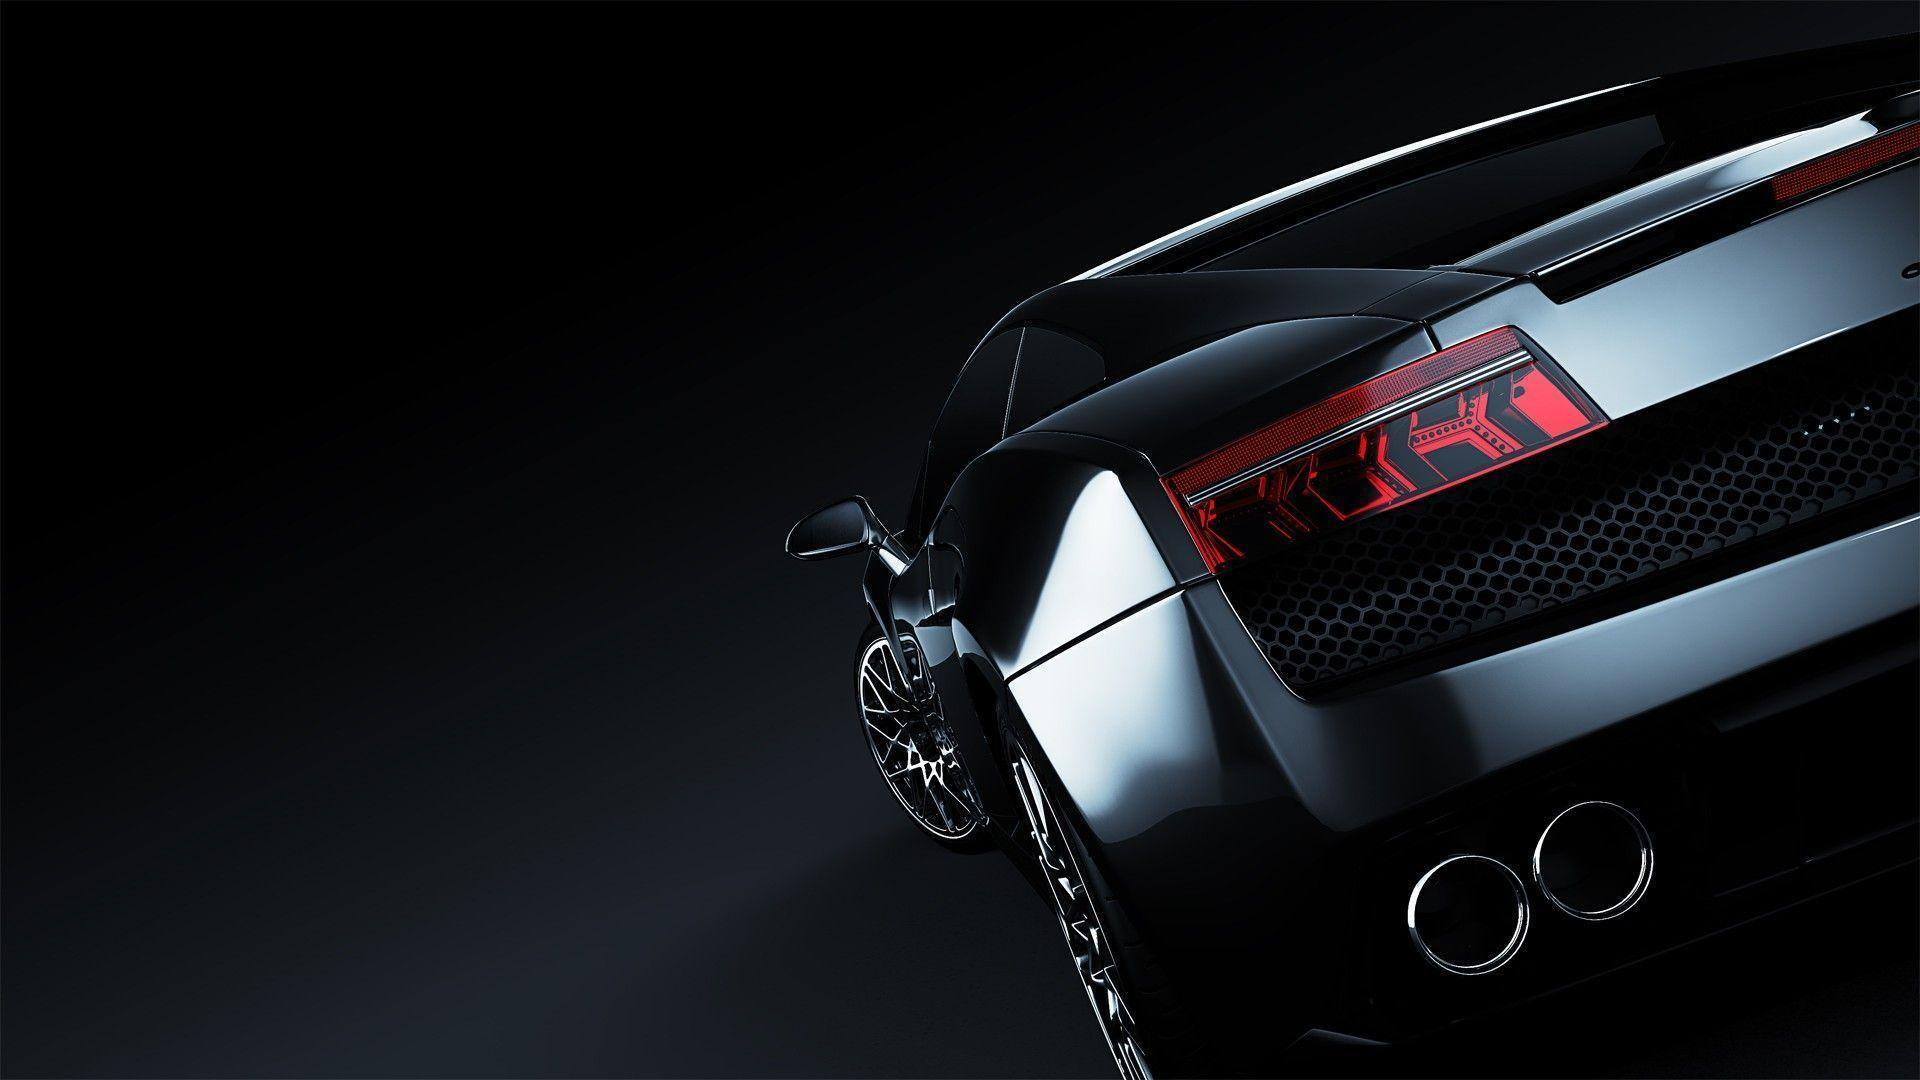 Wallpapers For > Lamborghini Aventador Black Wallpaper Hd 1080p